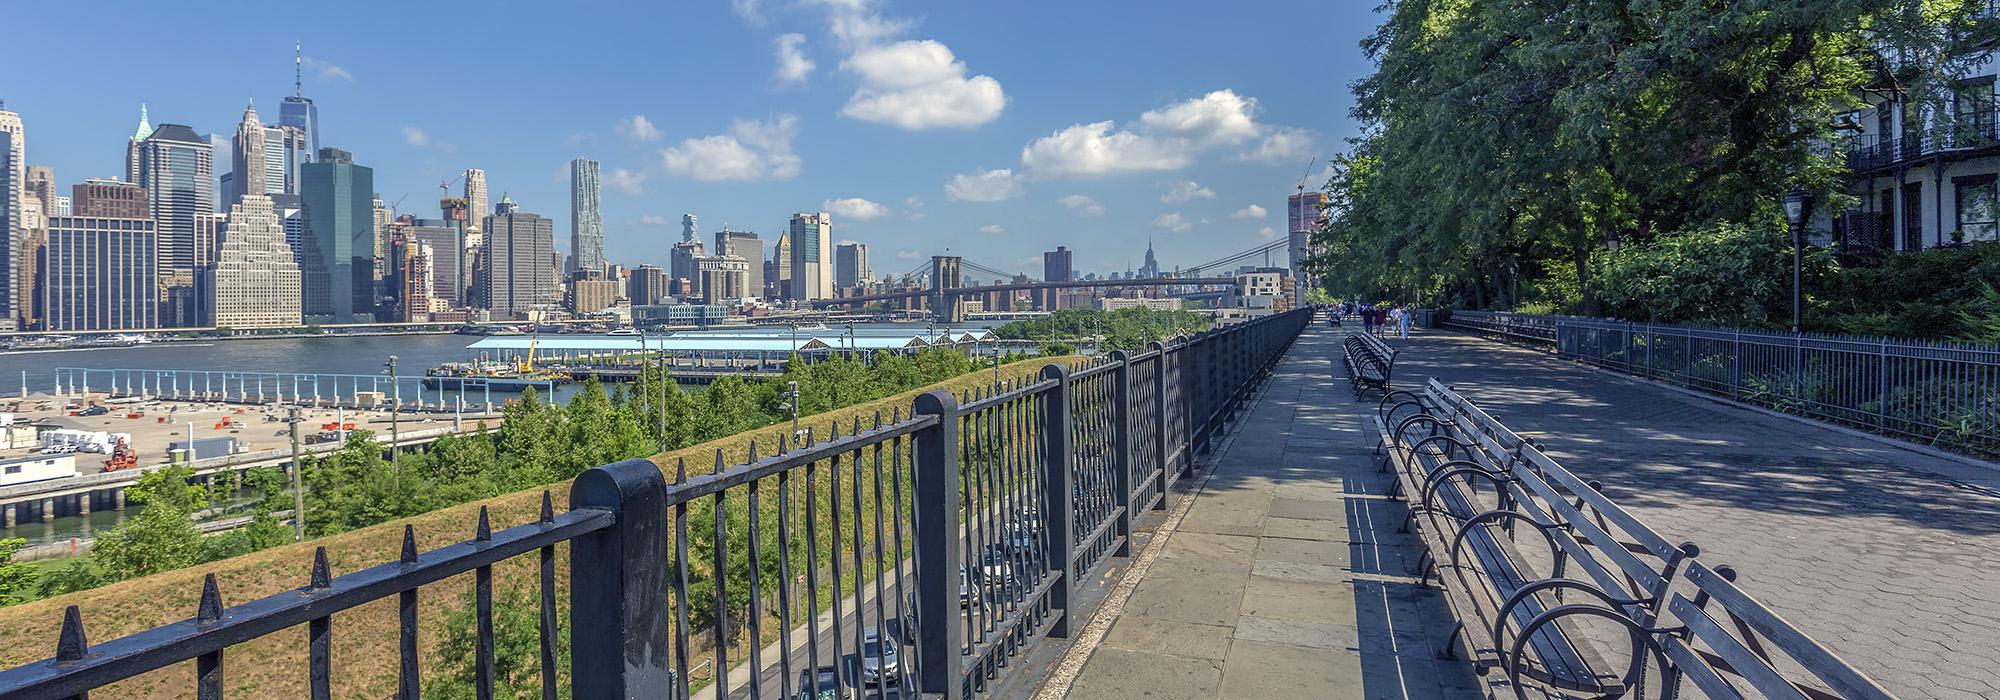 Expert Panel Advises: Spare Brooklyn Heights Promenade   The Cultural  Landscape Foundation